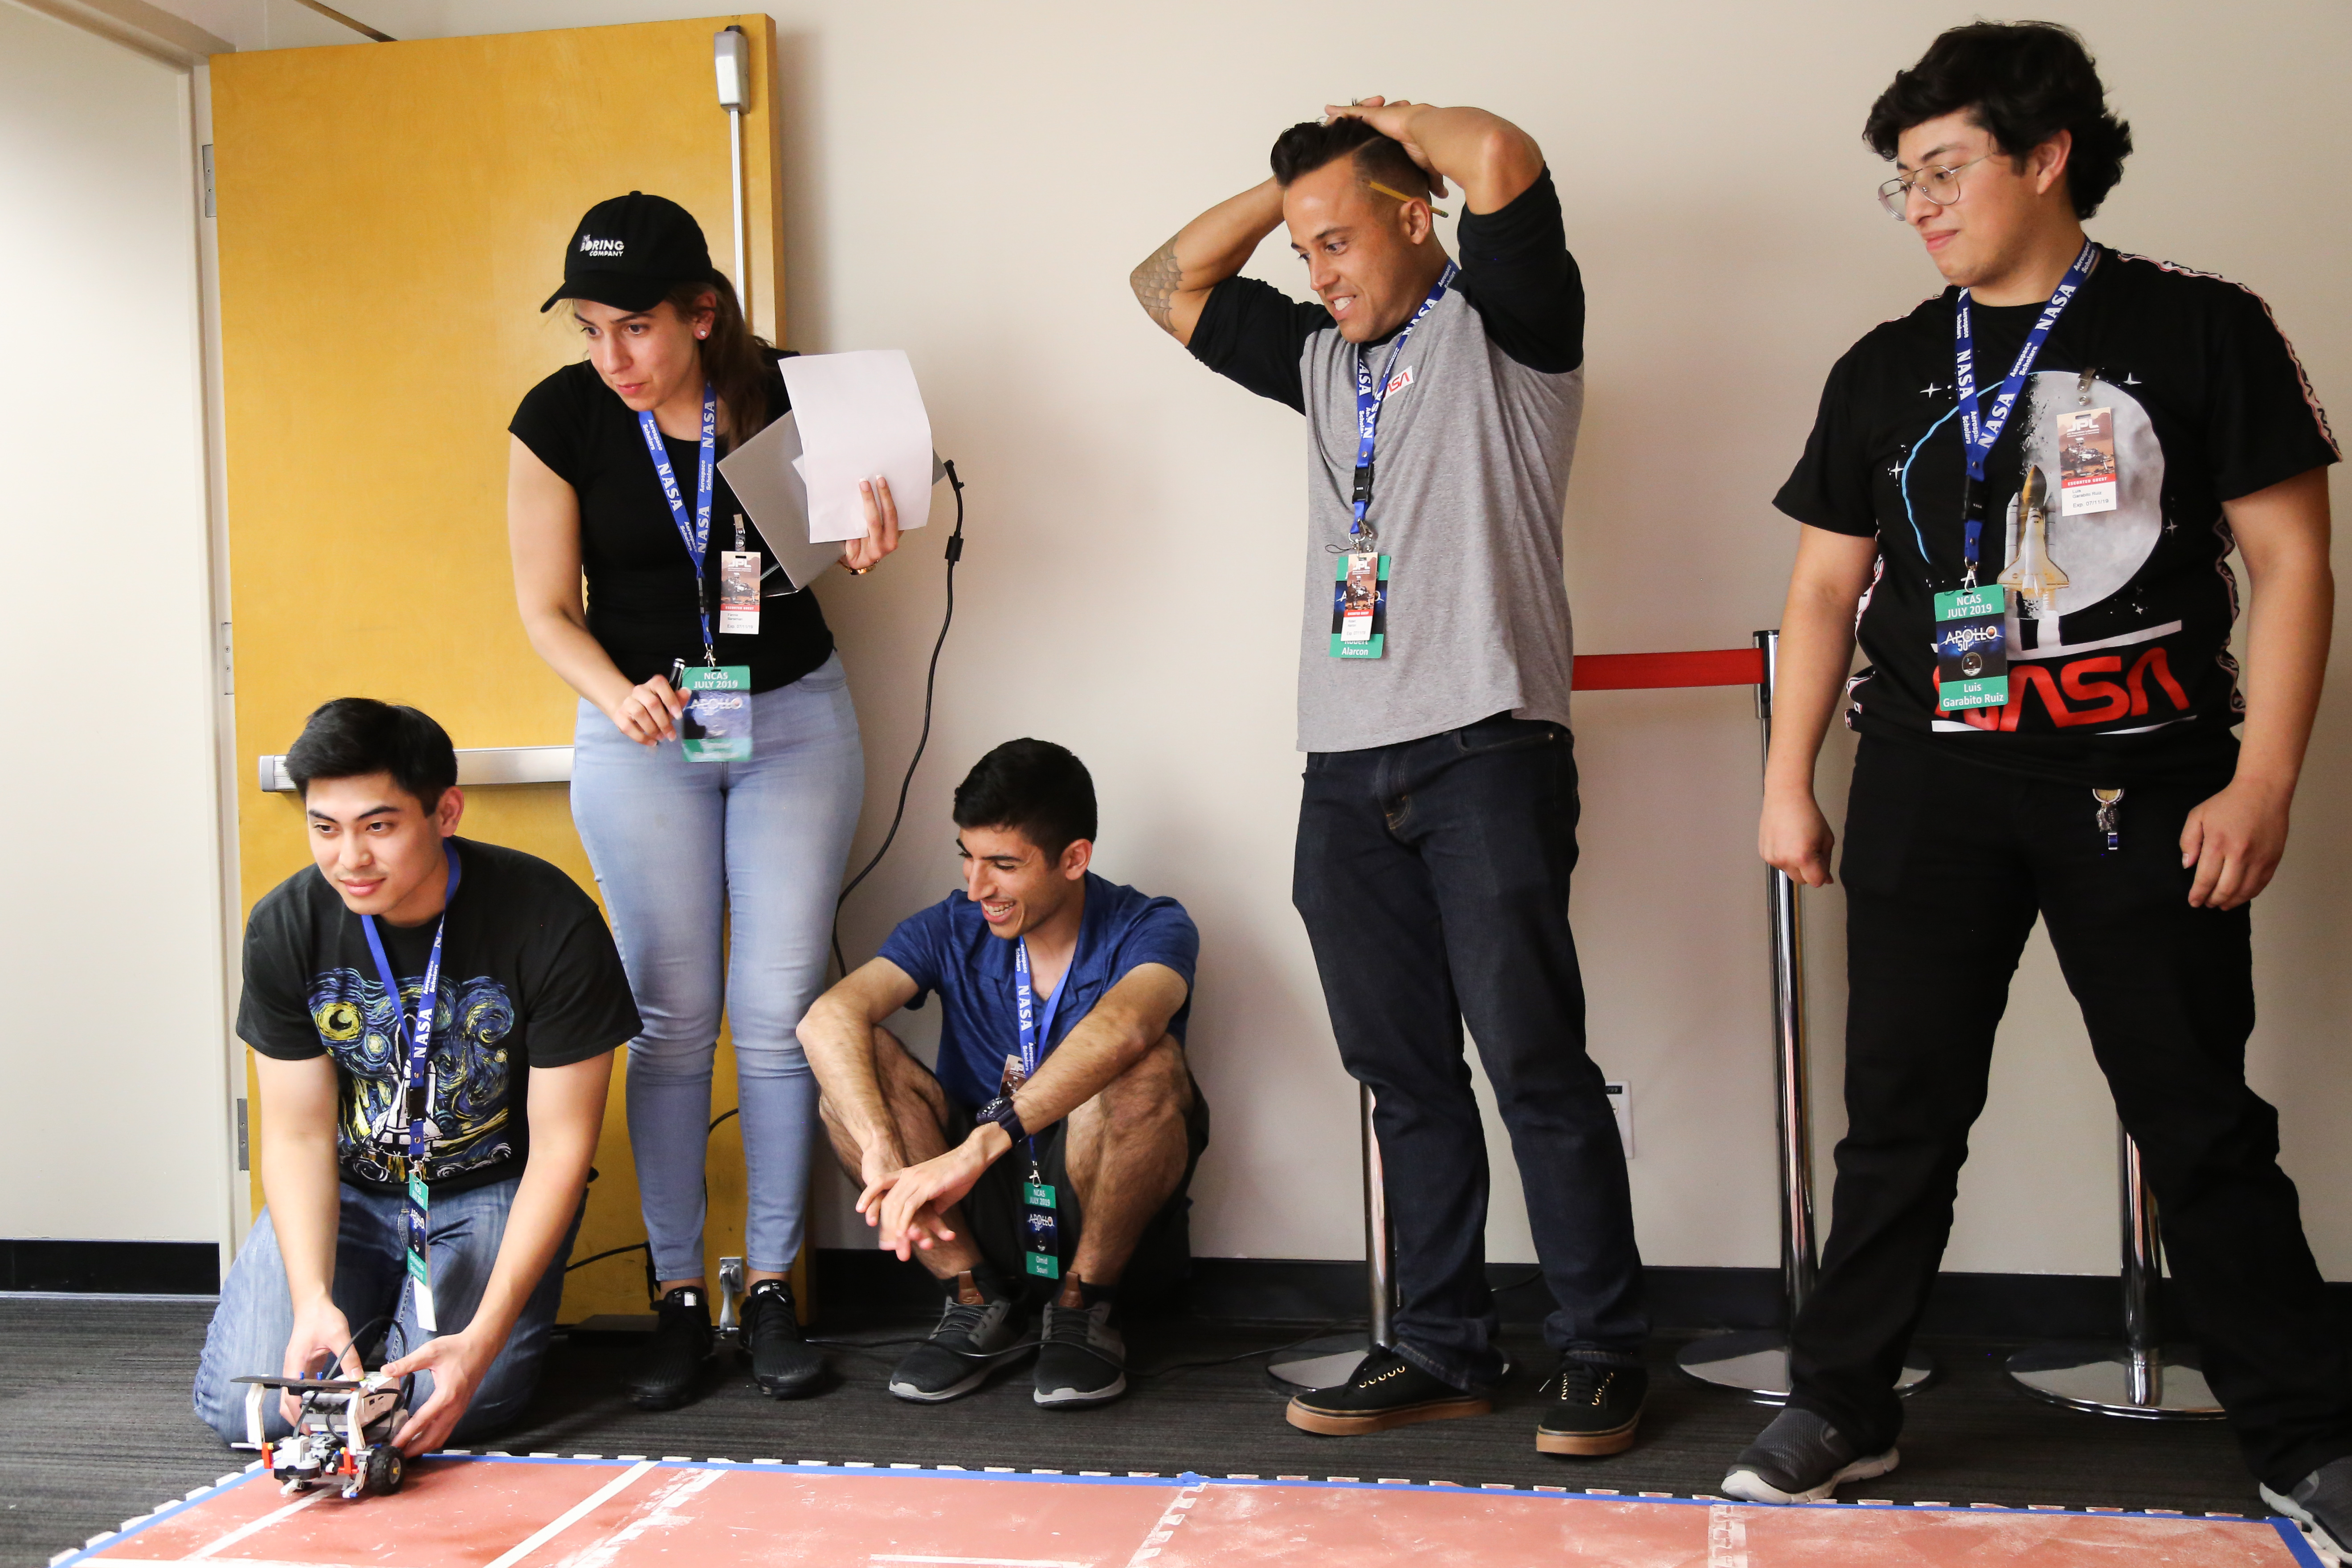 Several students stand against a wall while another sets a miniature rover on a red surface meant to simulate Martian terrain